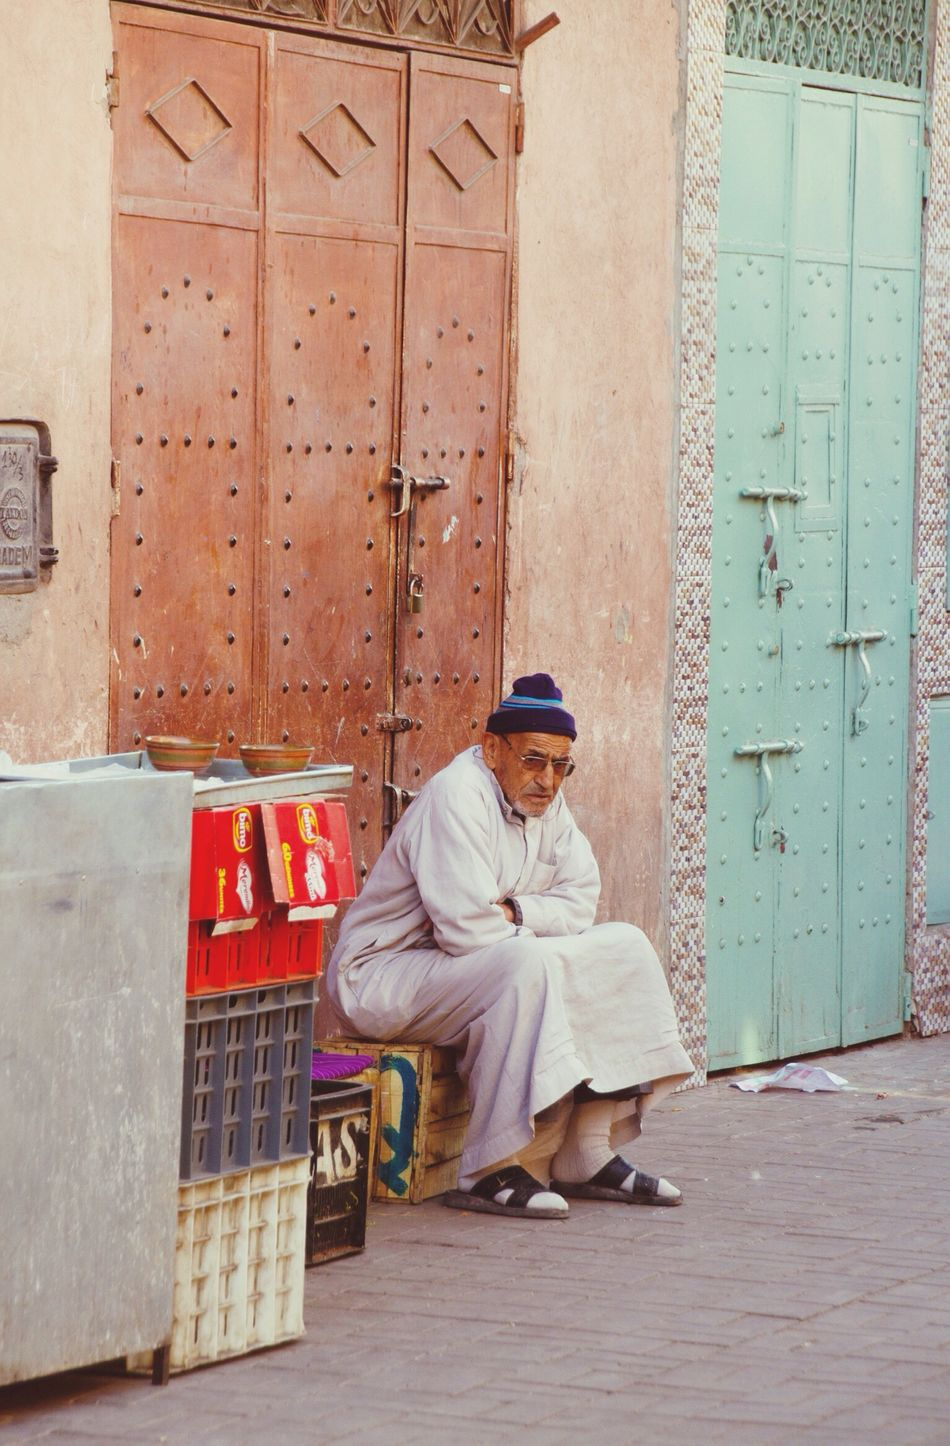 Morocco Arabian Old Man Old Man Sitting Old Man Chilling Arab Man Streetphotography Streetscene Streetlife Old Town People Watching